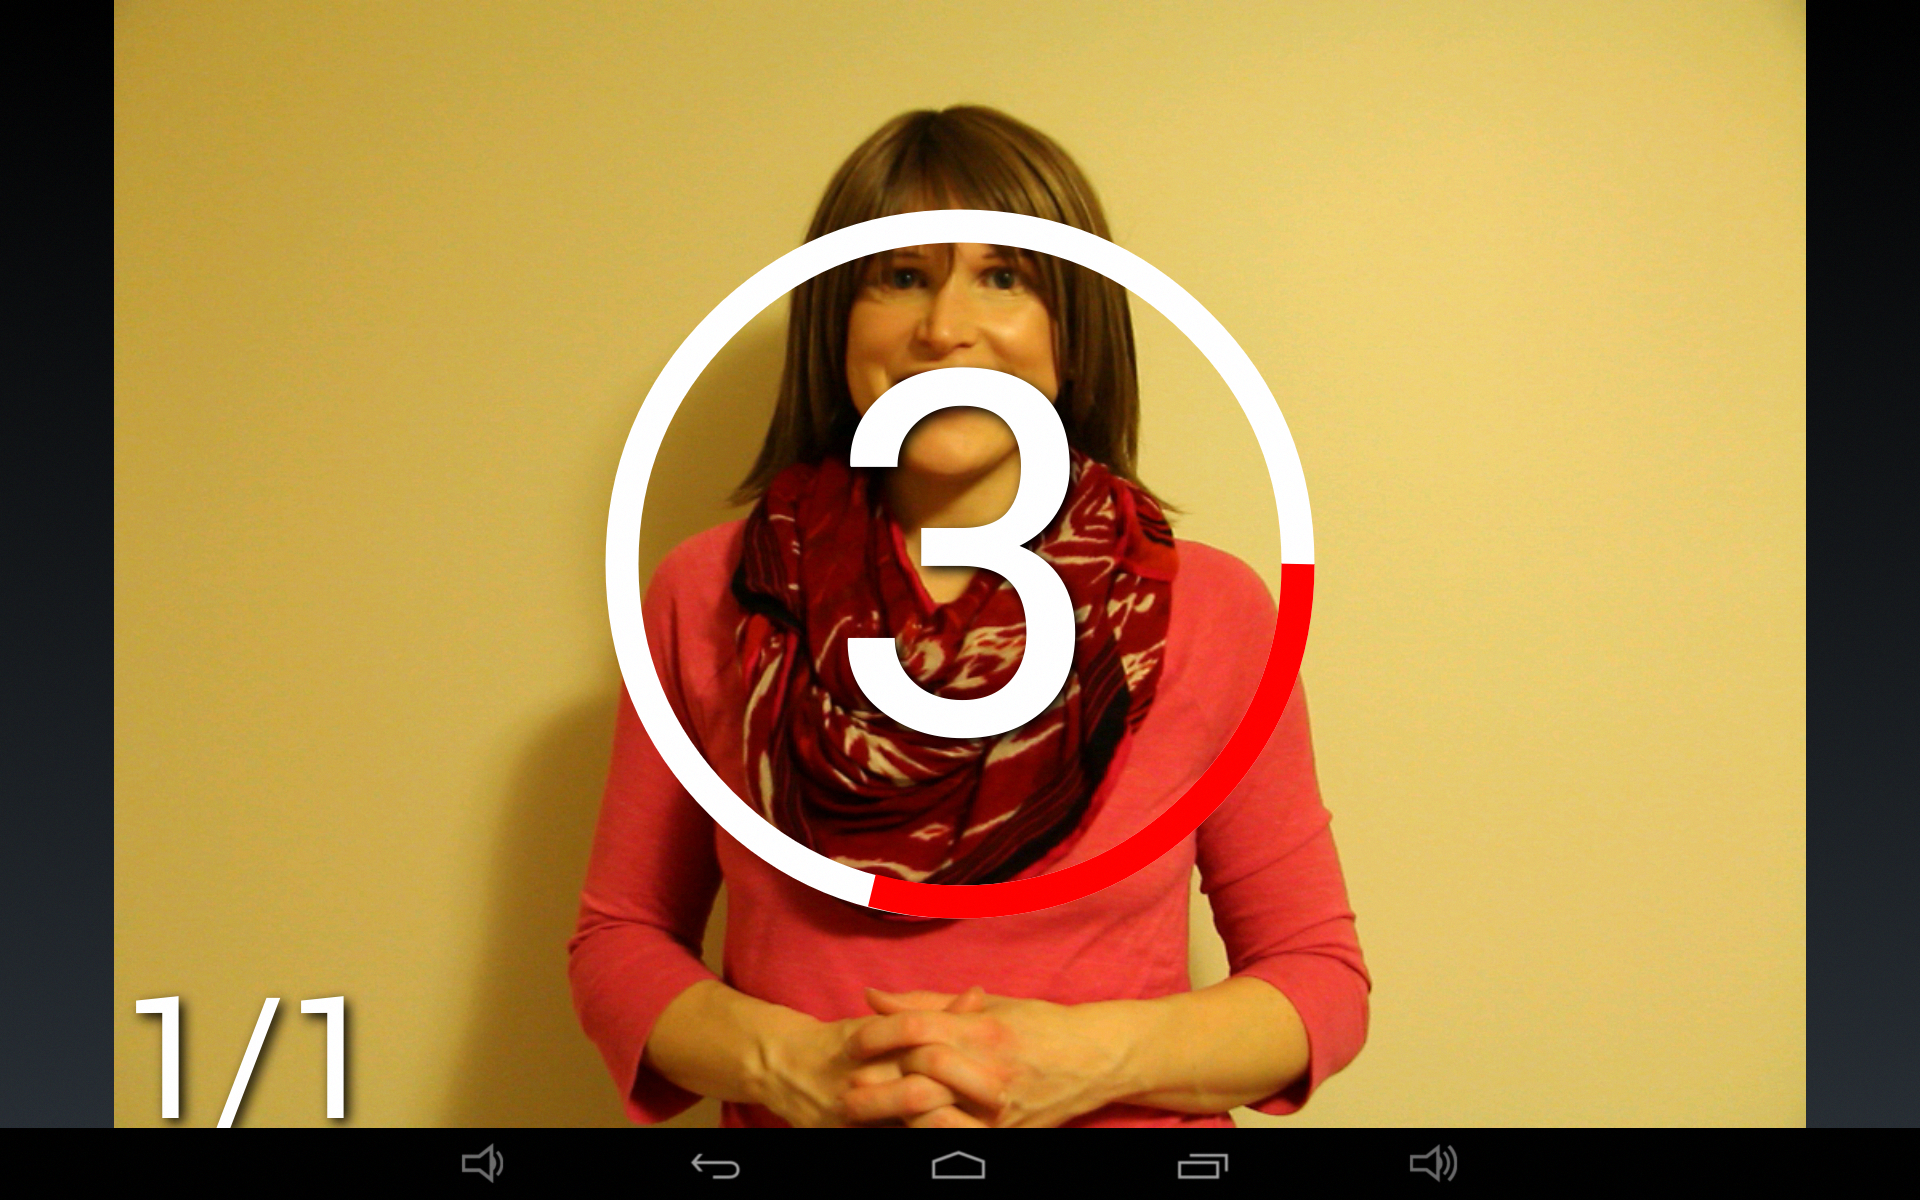 How to use SLR Booth Photo Booth app for Android